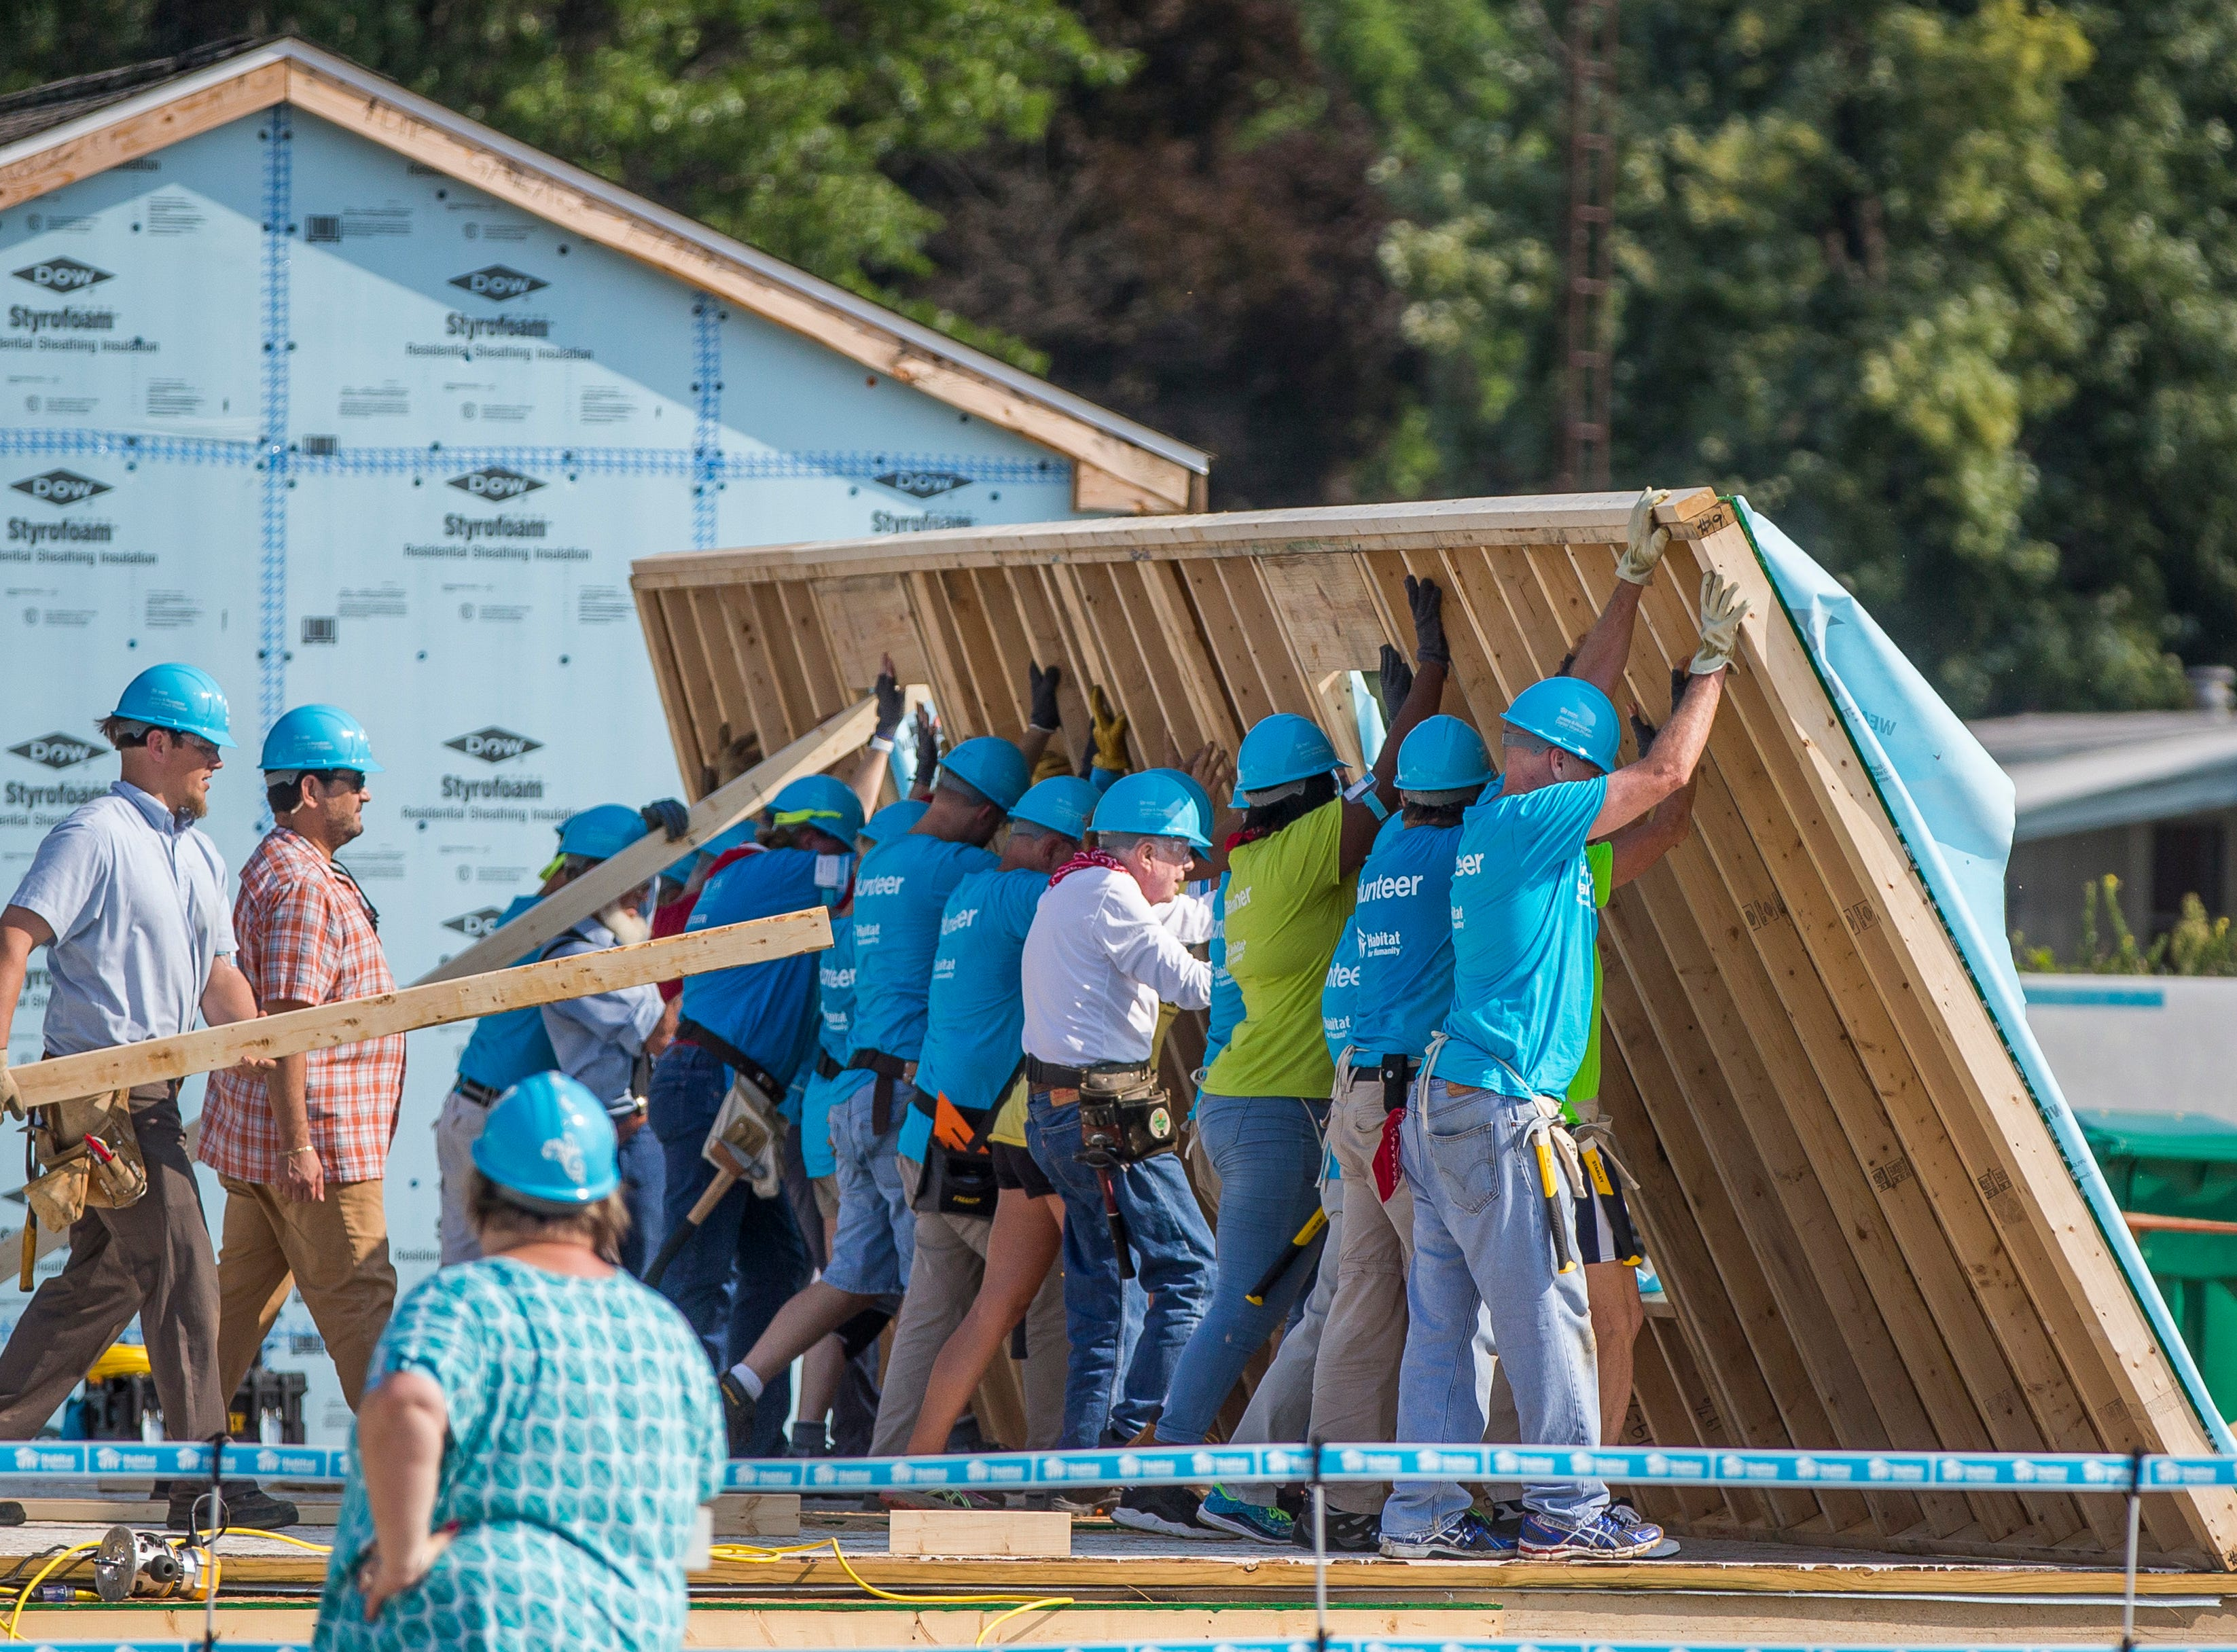 Former President Jimmy Carter, center, works with other volunteers on site during the first day of the weeklong Jimmy & Rosalynn Carter Work Project on Monday, Aug. 27, 2018, in Mishawaka, Ind.